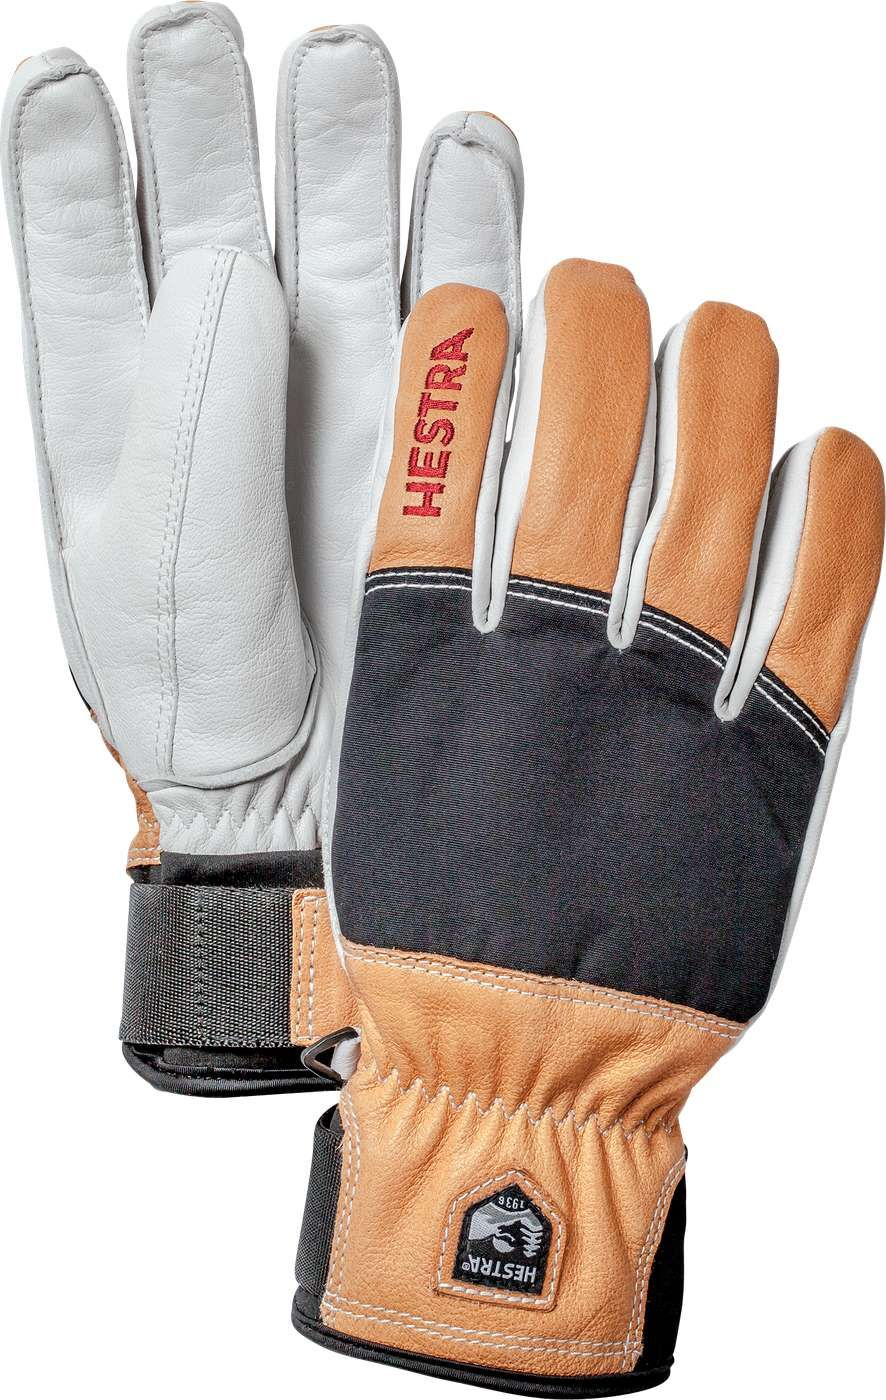 Hestra mens gloves - Army Leather Abisko Hestra Gloves Alpine Pro Gloves Are Used By Freeriders Professional Mountain